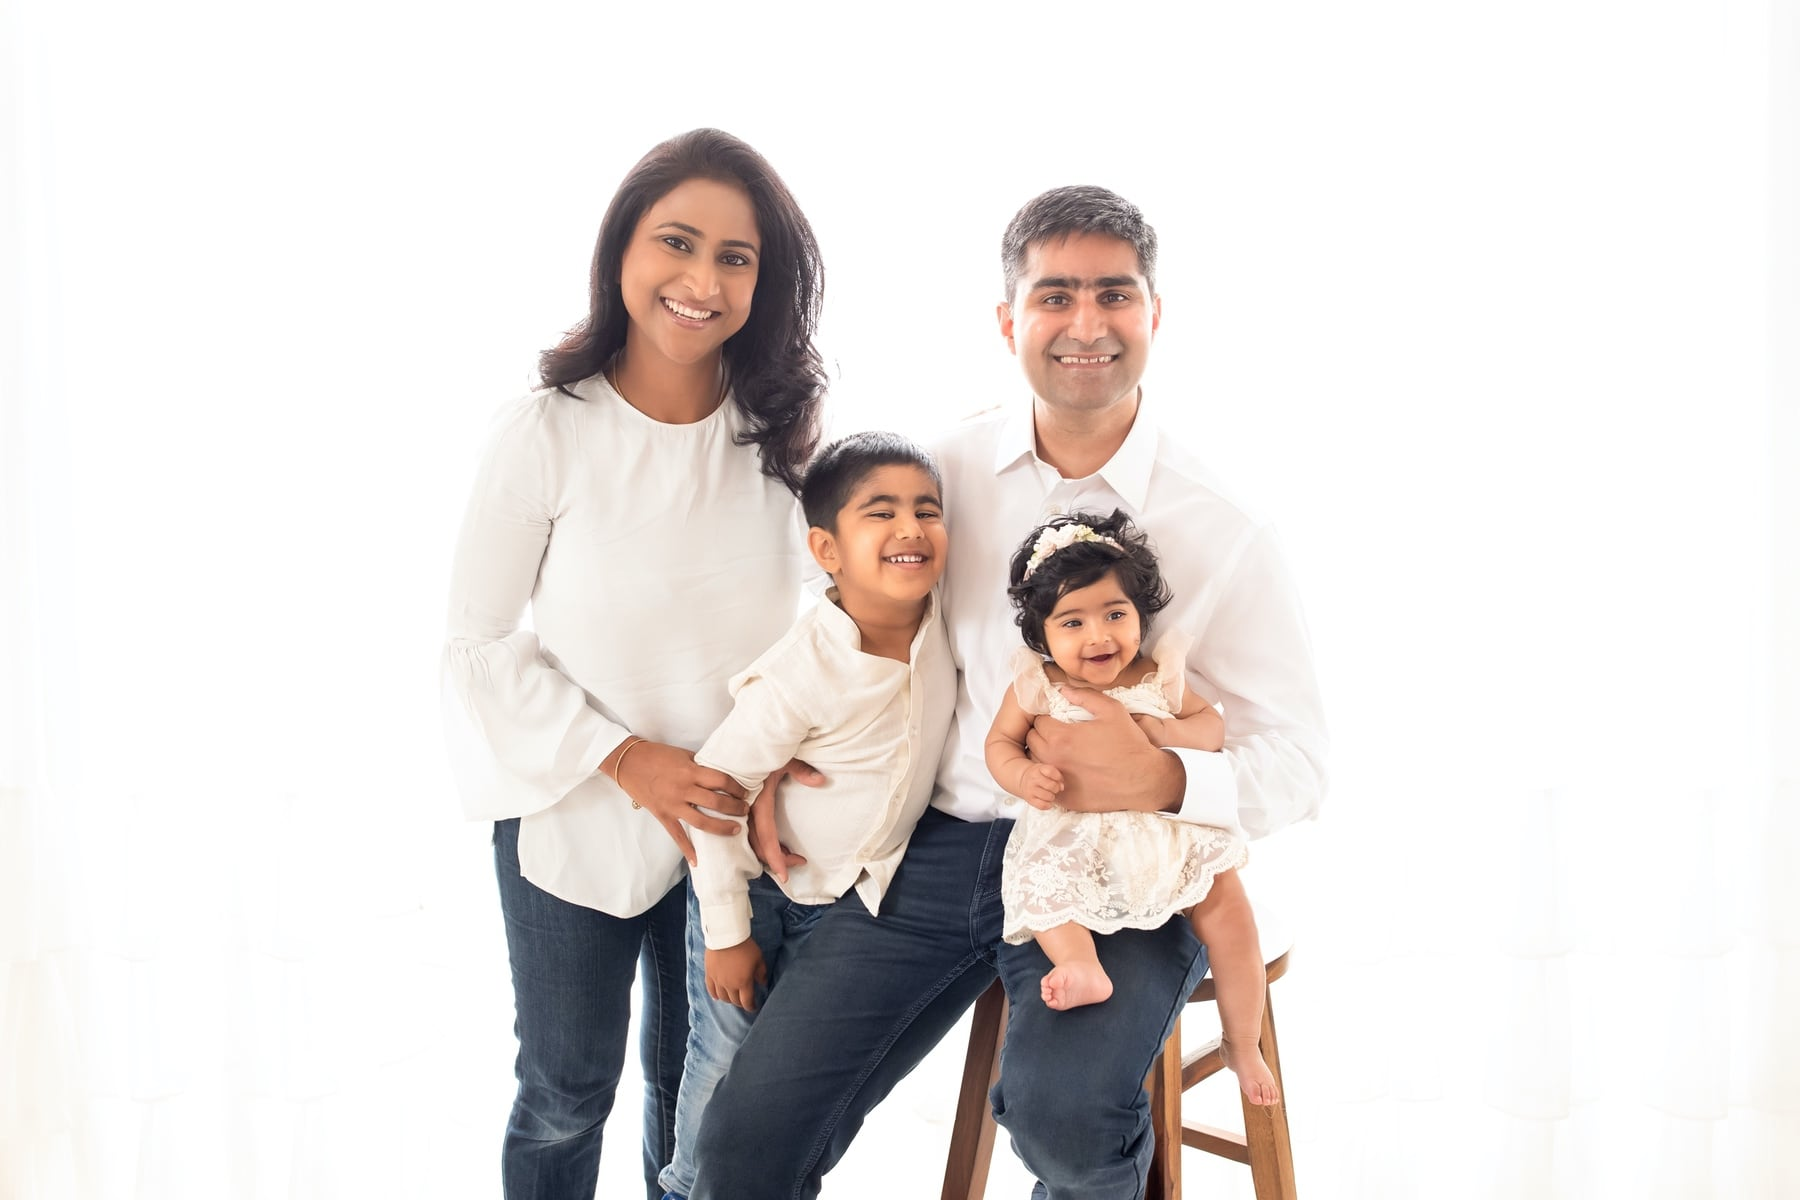 40902-all-white-family-photography-delhi-4-5-6-months-photoshoot-gurgaon-anega-bawa